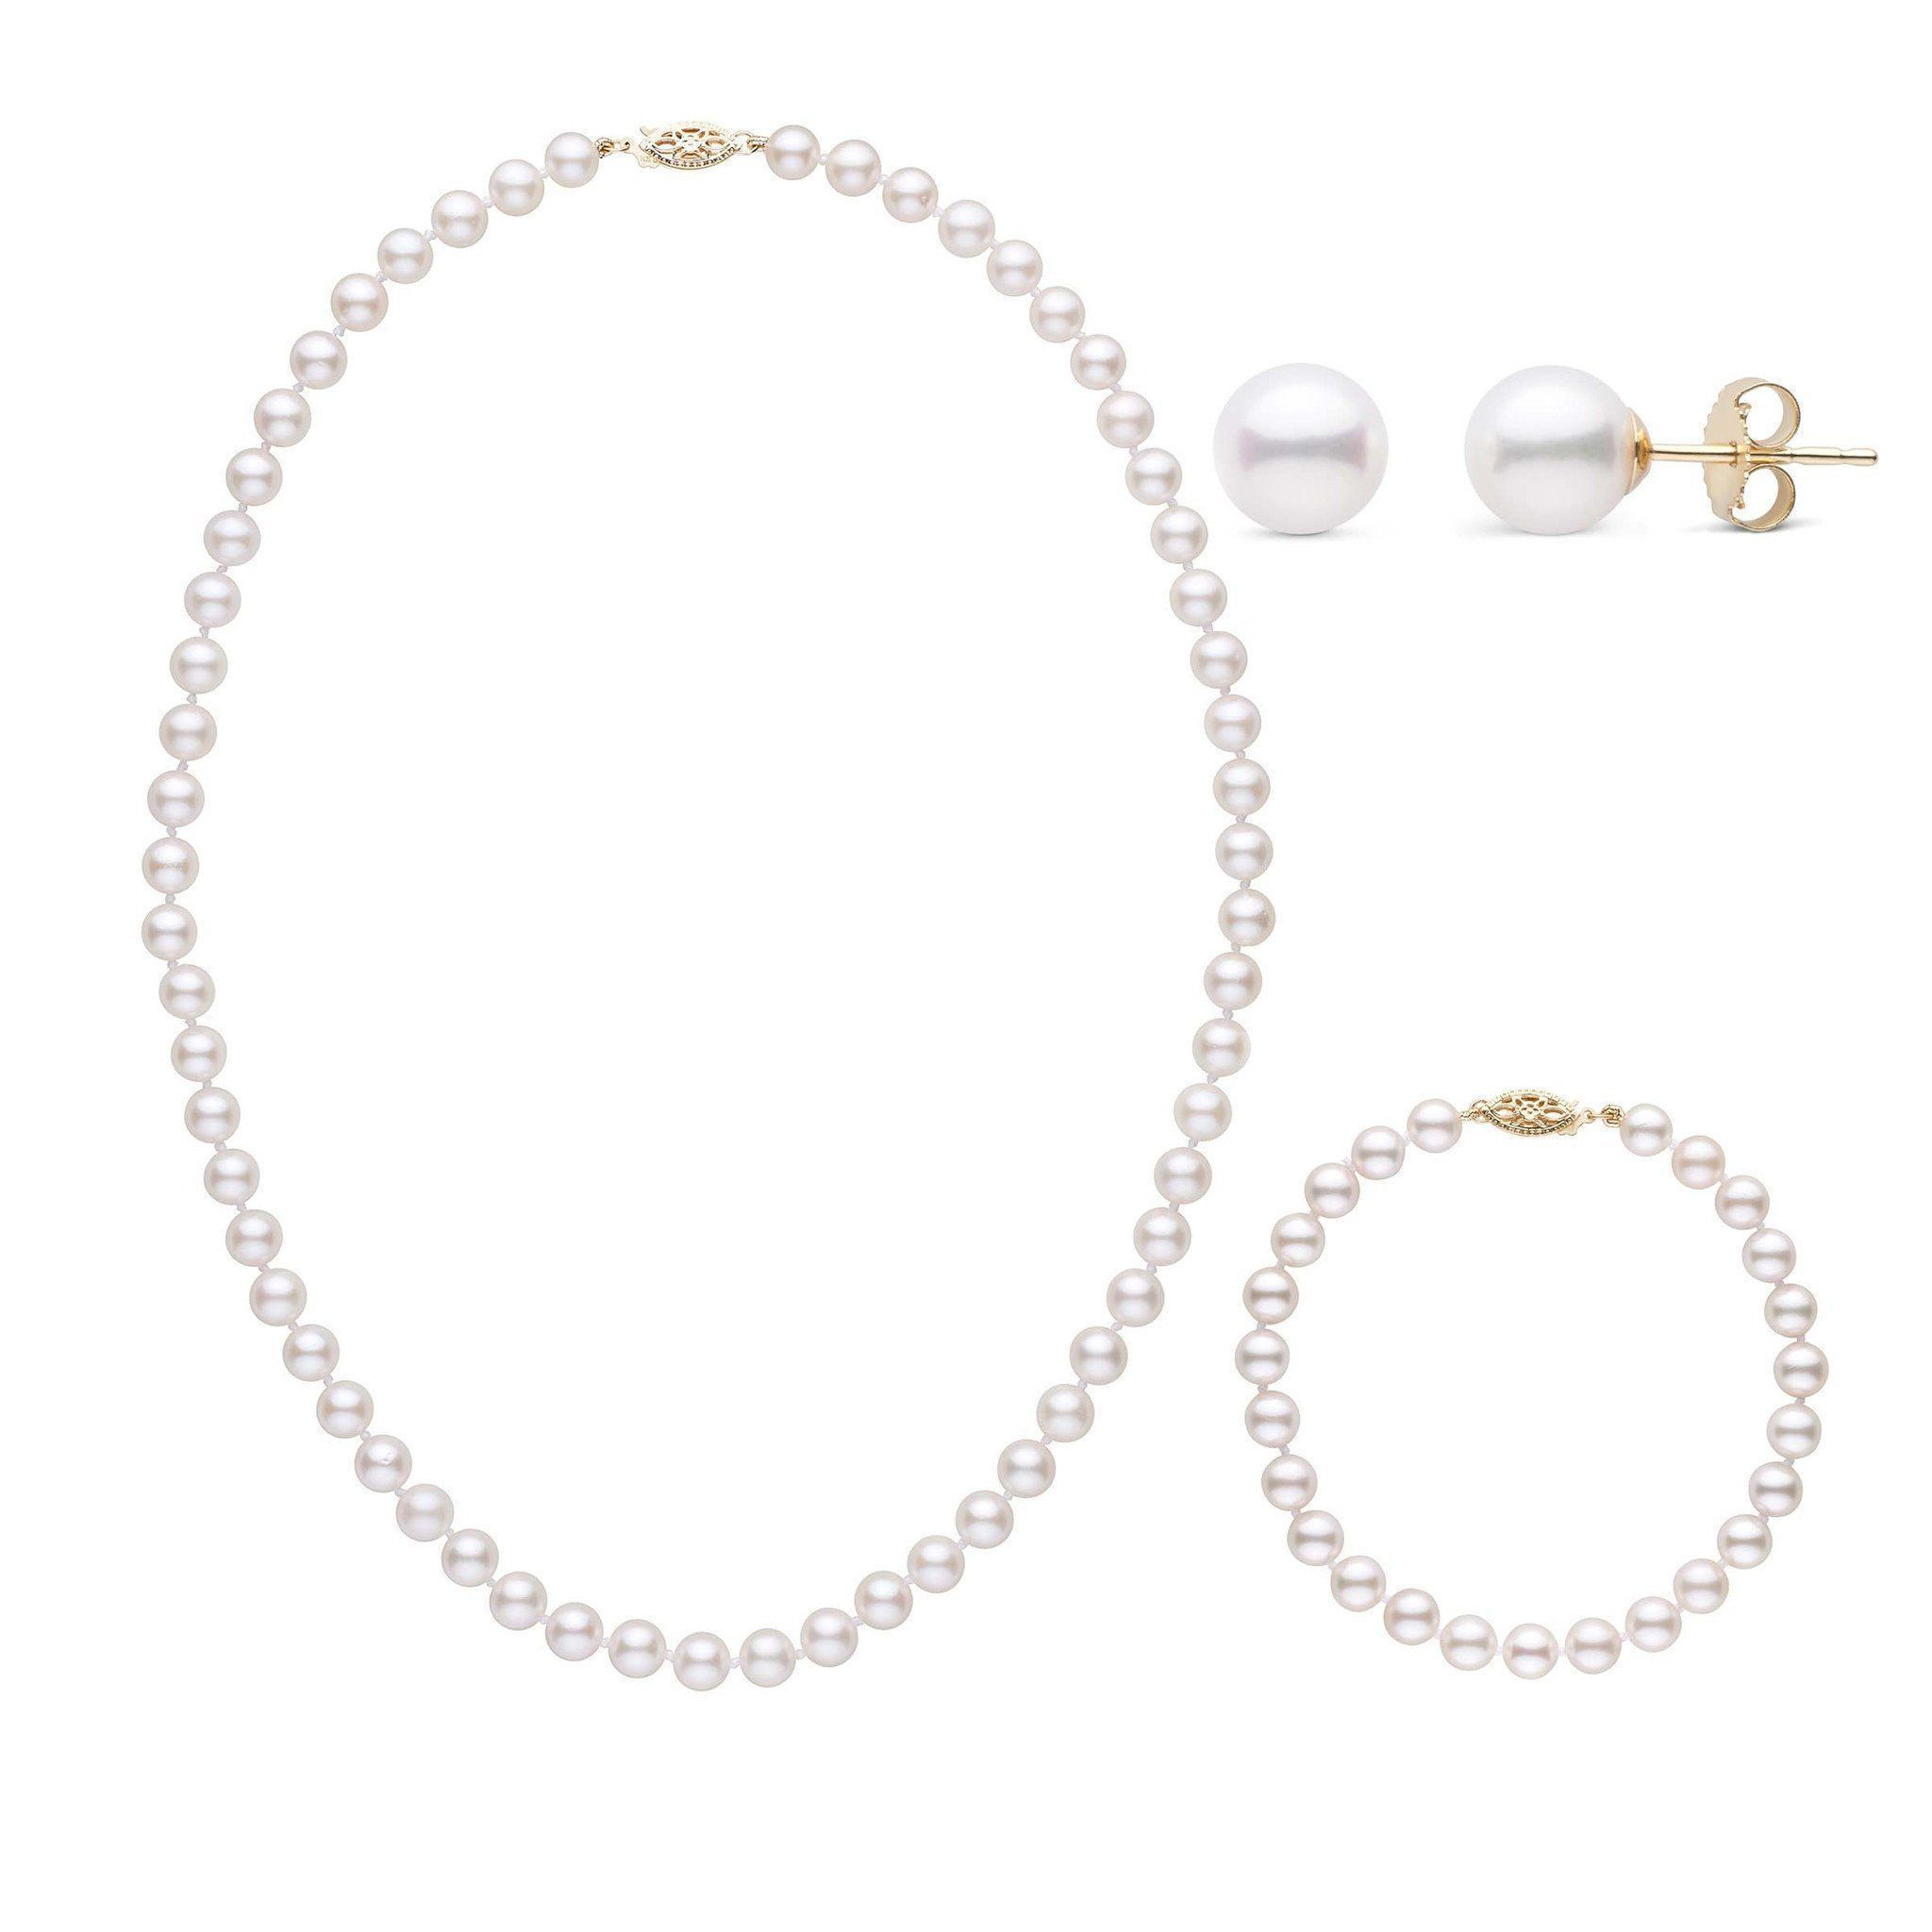 16 Inch 3 Piece Set of 6.0-6.5 mm AA+ White Akoya Pearls